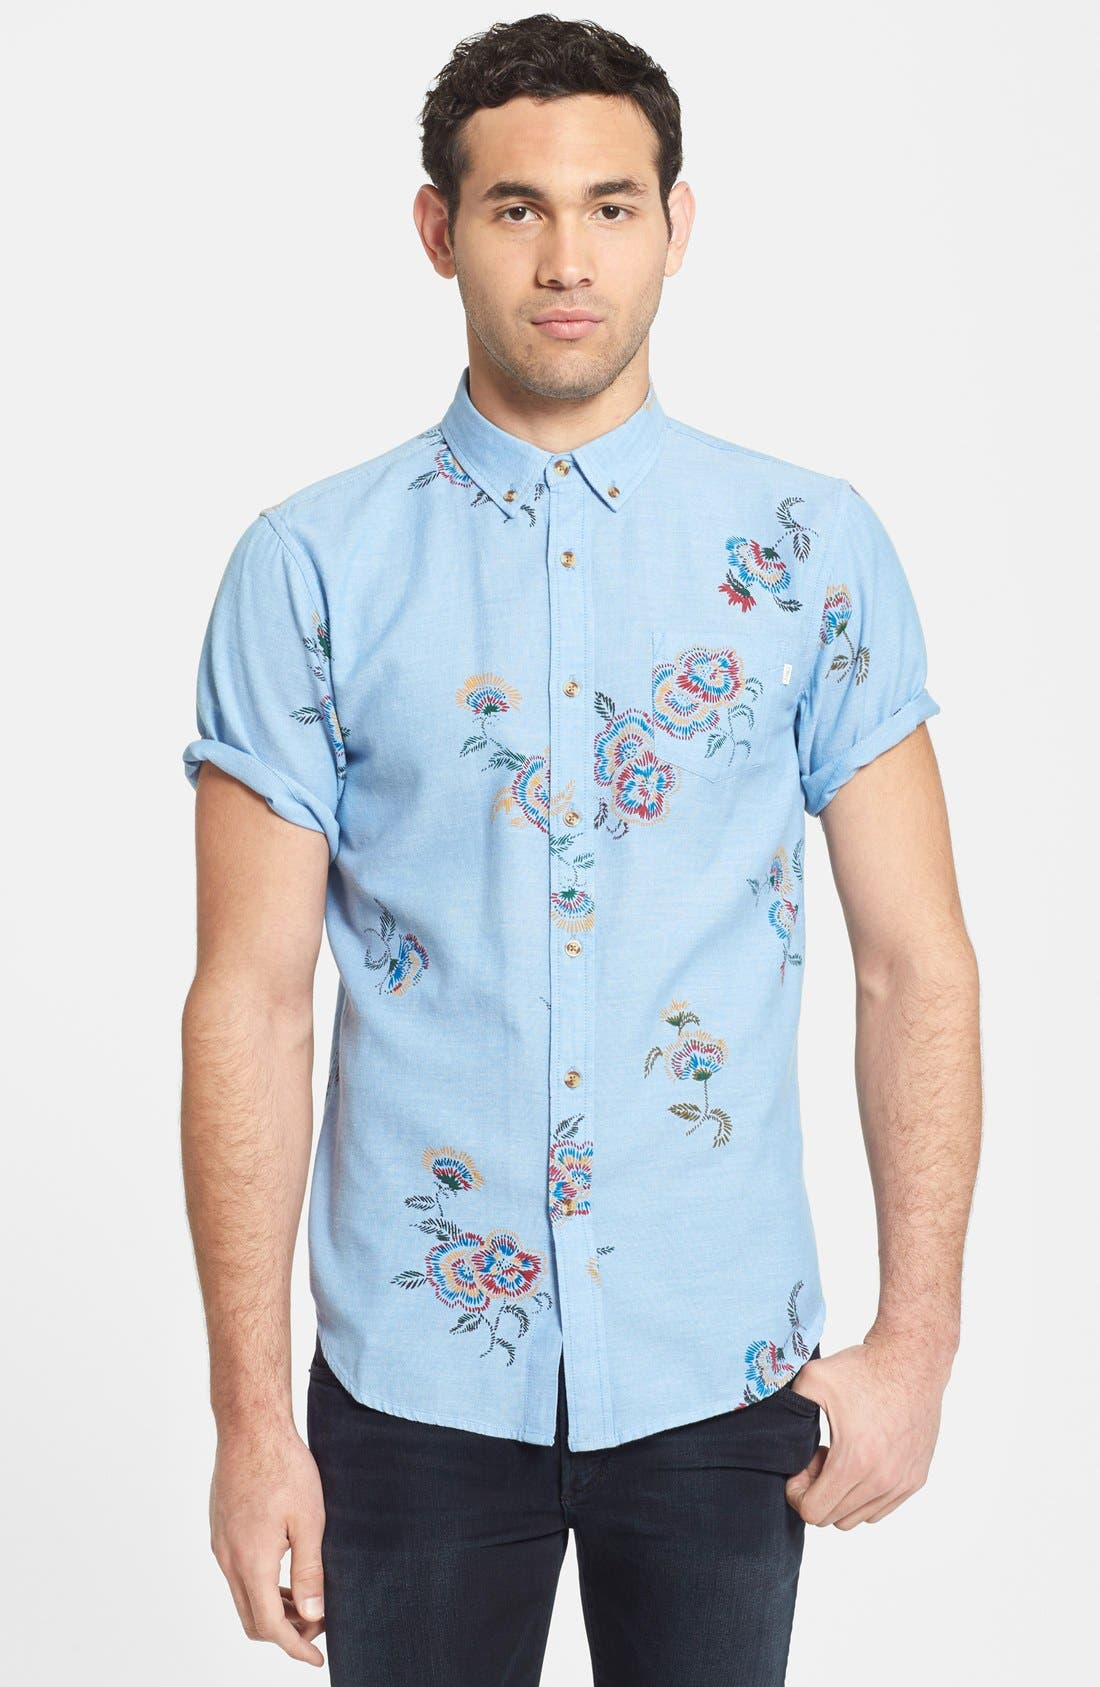 Alternate Image 1 Selected - Obey 'Patton' Short Sleeve Floral Print Woven Shirt